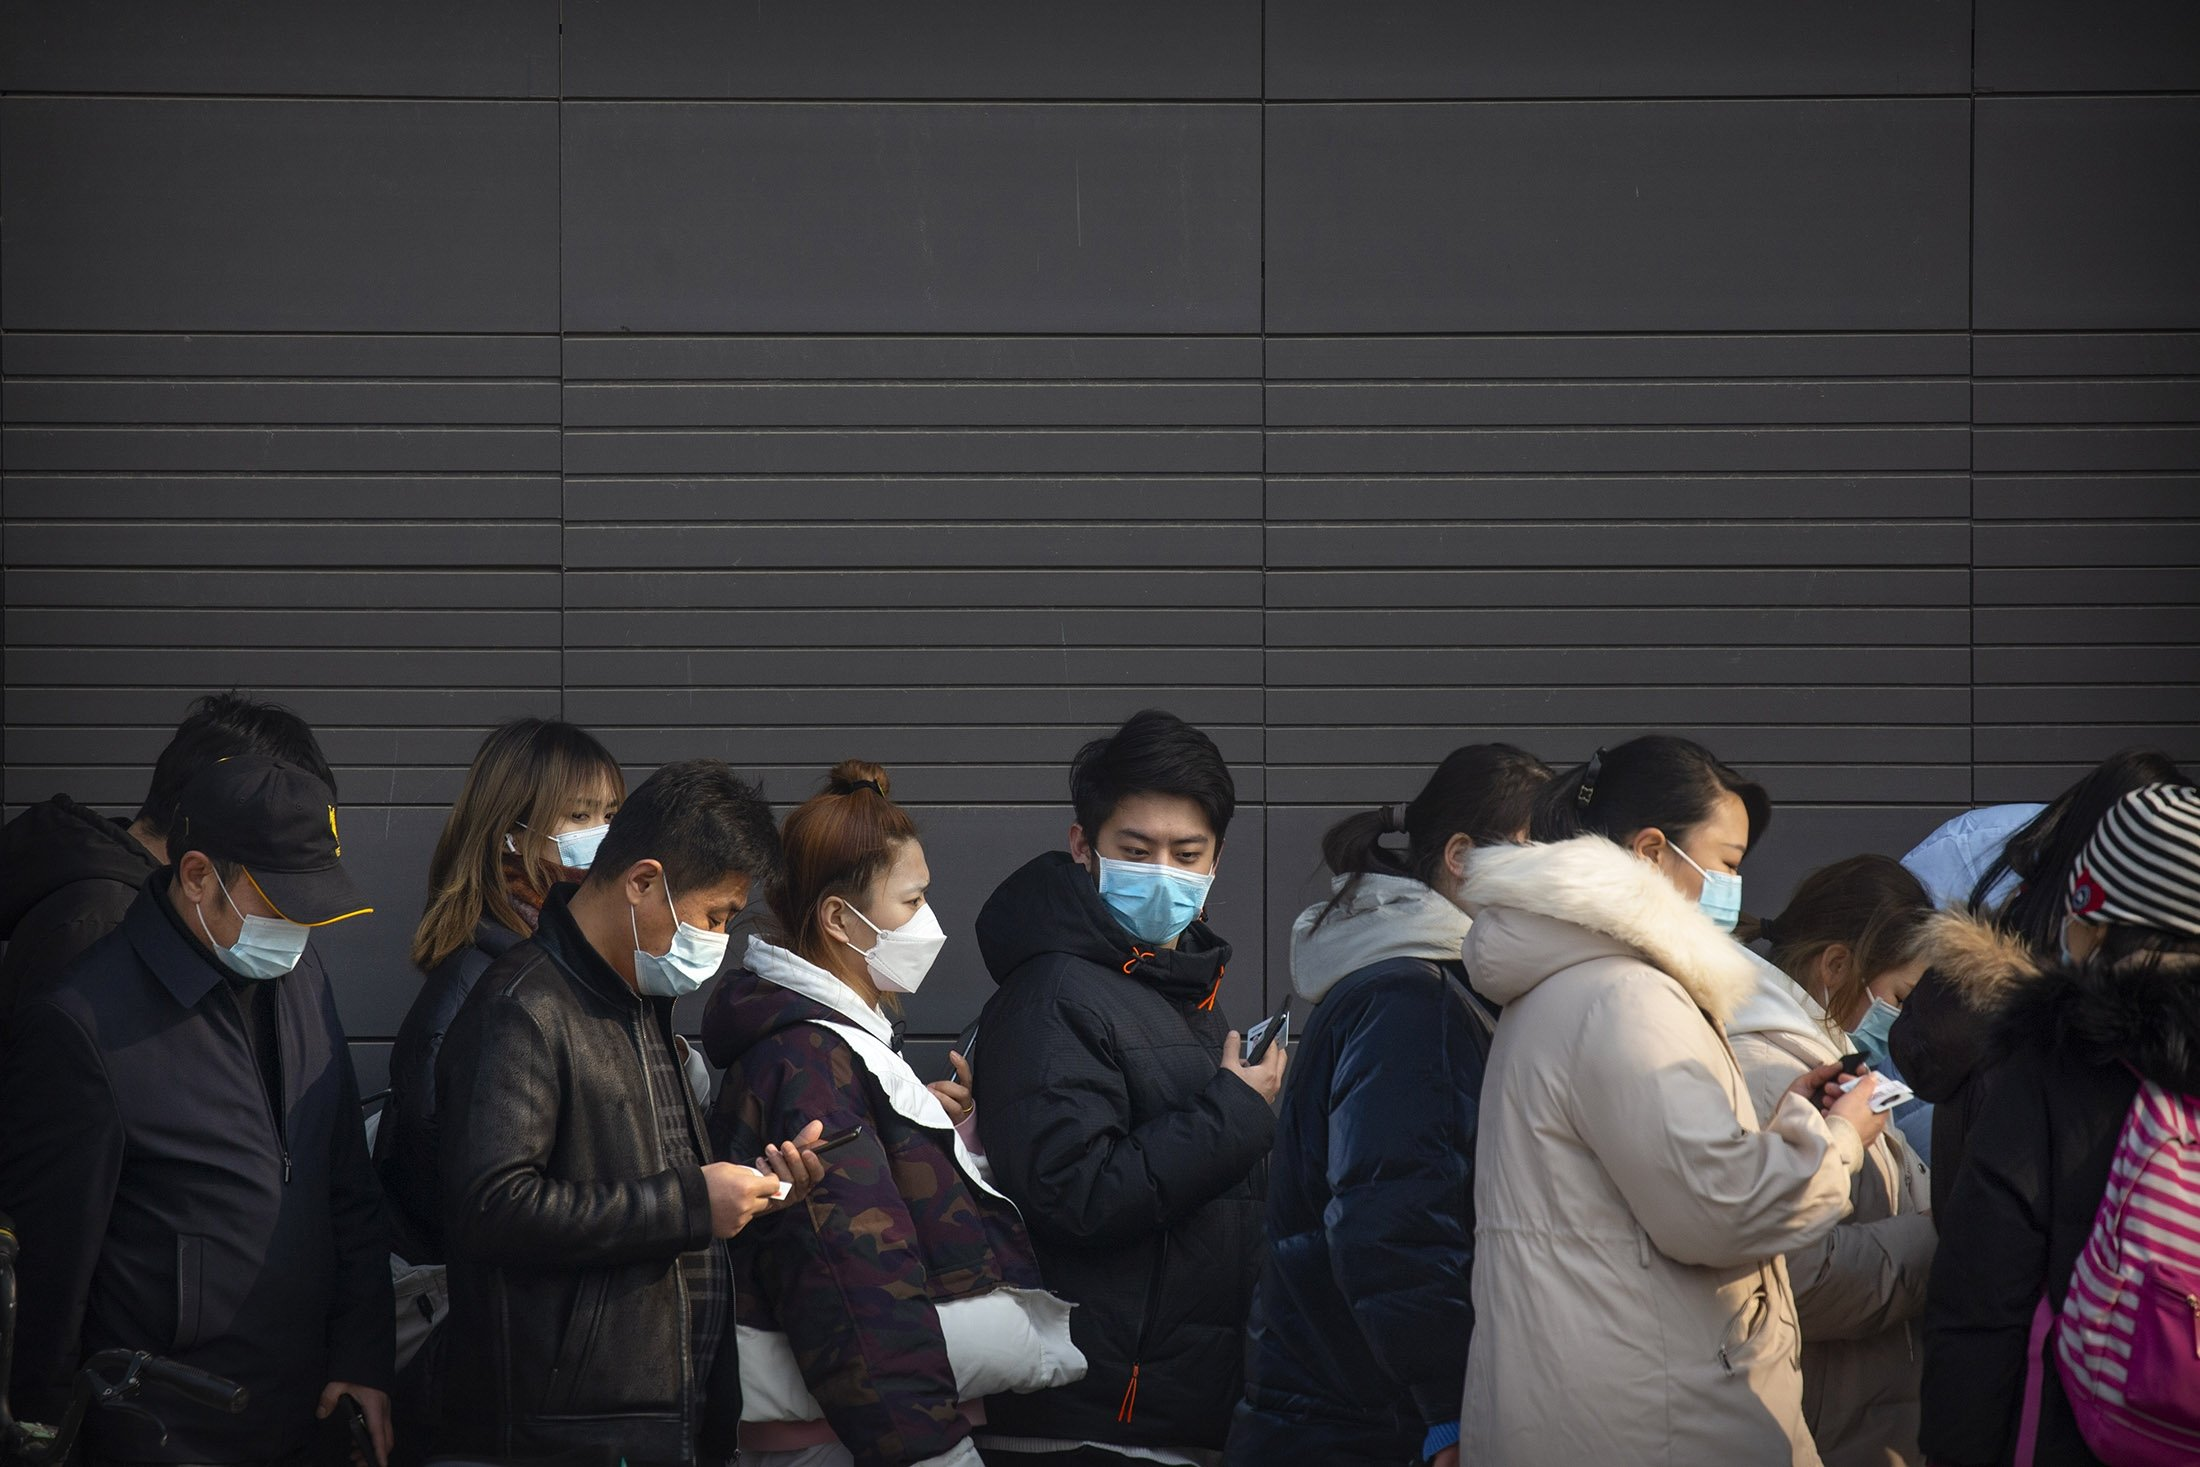 People wearing face masks to protect against the spread of the coronavirus line up for mass COVID-19 testing in a central district of Beijing, Jan. 22, 2021. (AP Photo)